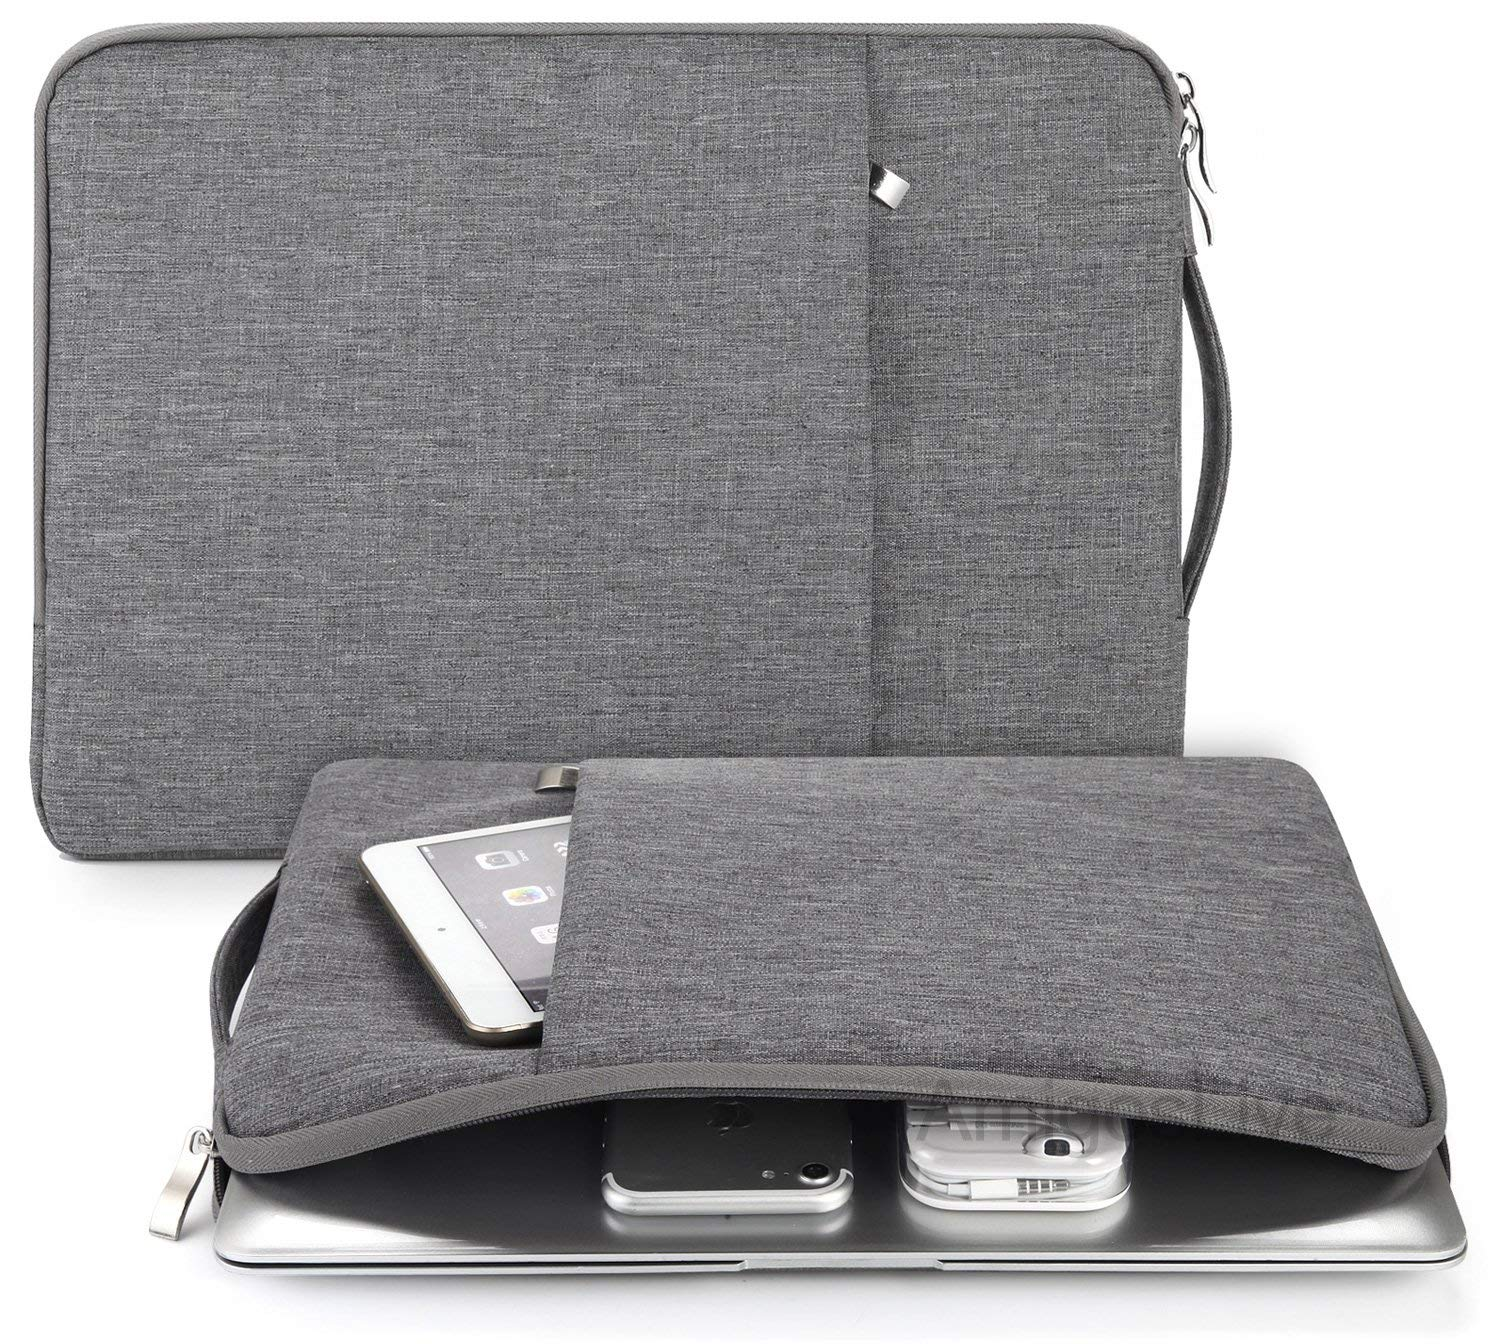 Handbag Sleeve Case For Microsoft Surface Pro 7 12.3 4 3 5 6 Waterproof Pouch Bag Cover NEW Laptop Go 12.4